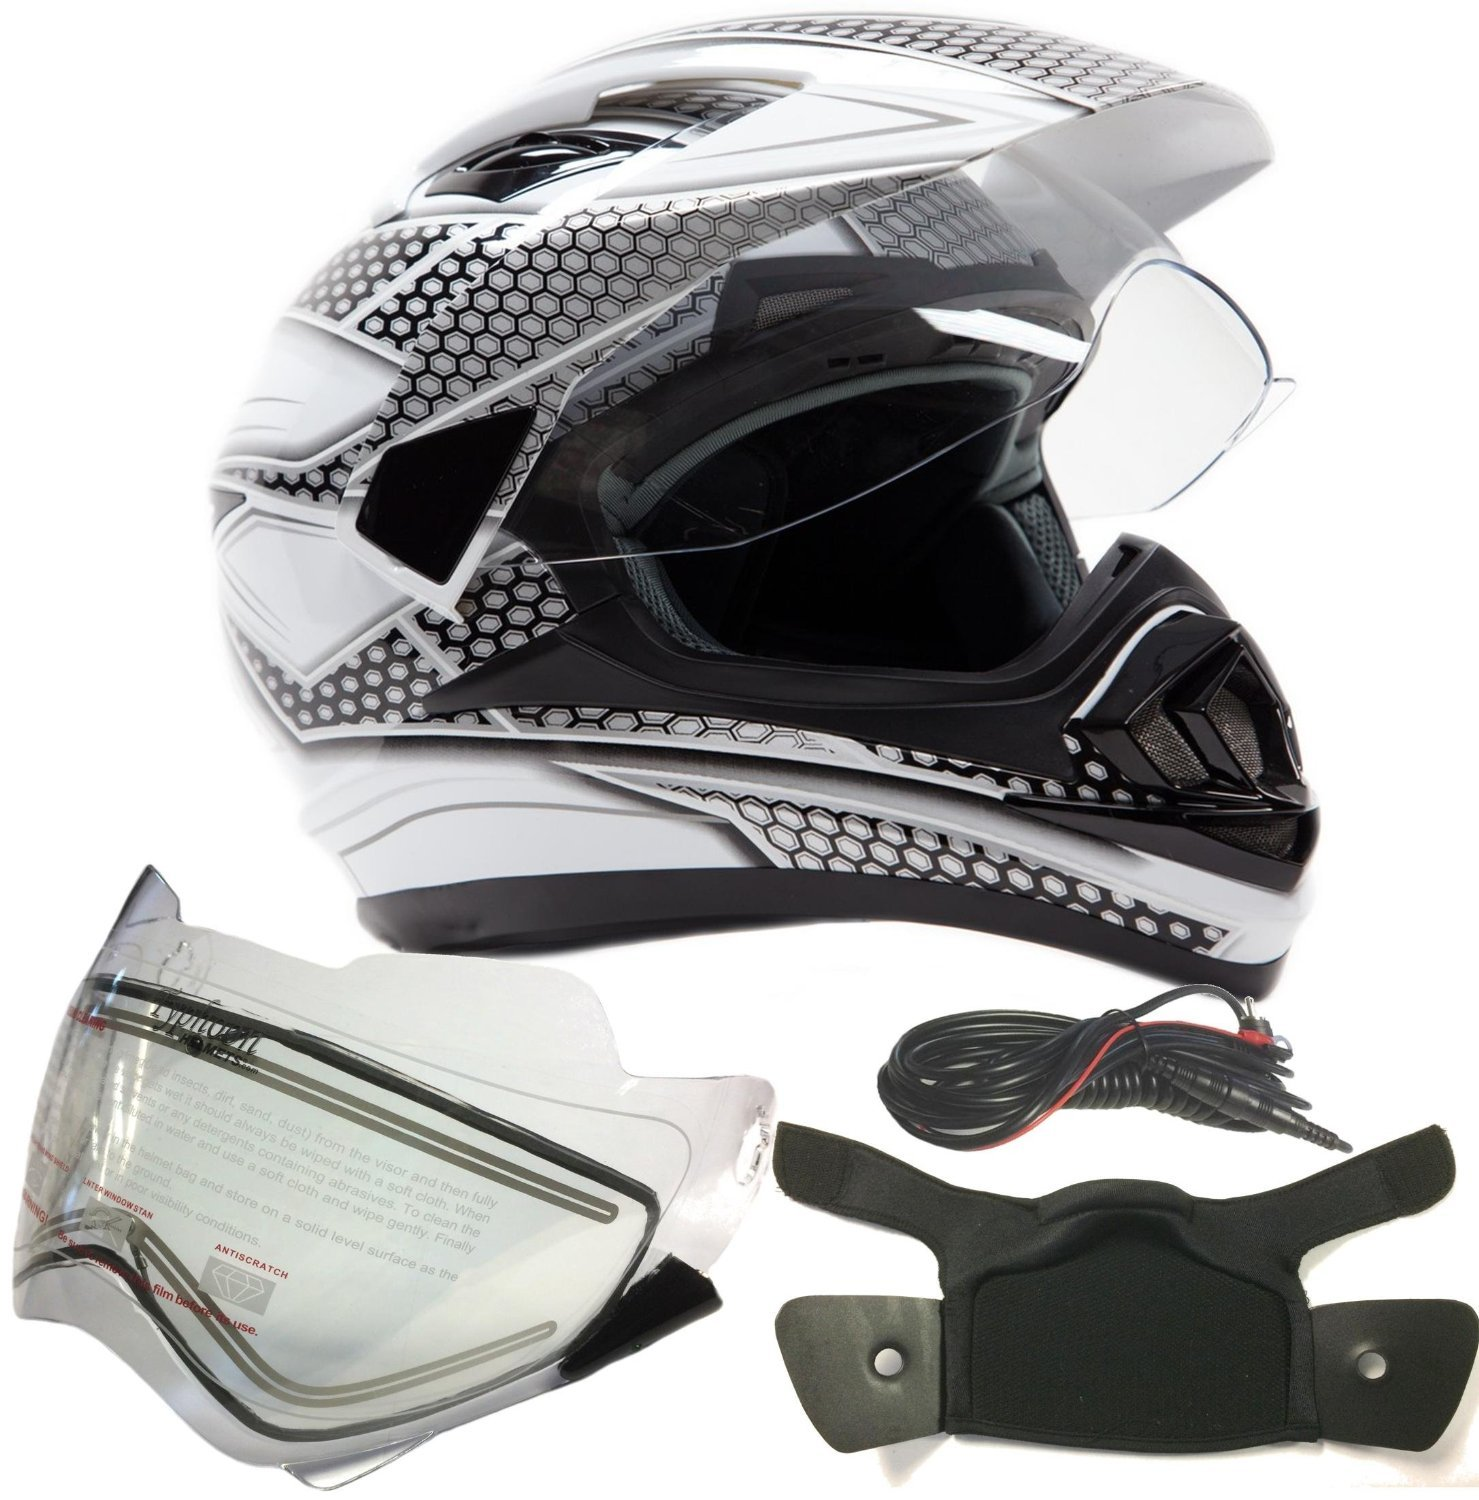 Dual Sport Snocross Snowmobile Helmet w/ Electric Heated Shield - White / Silver - XL